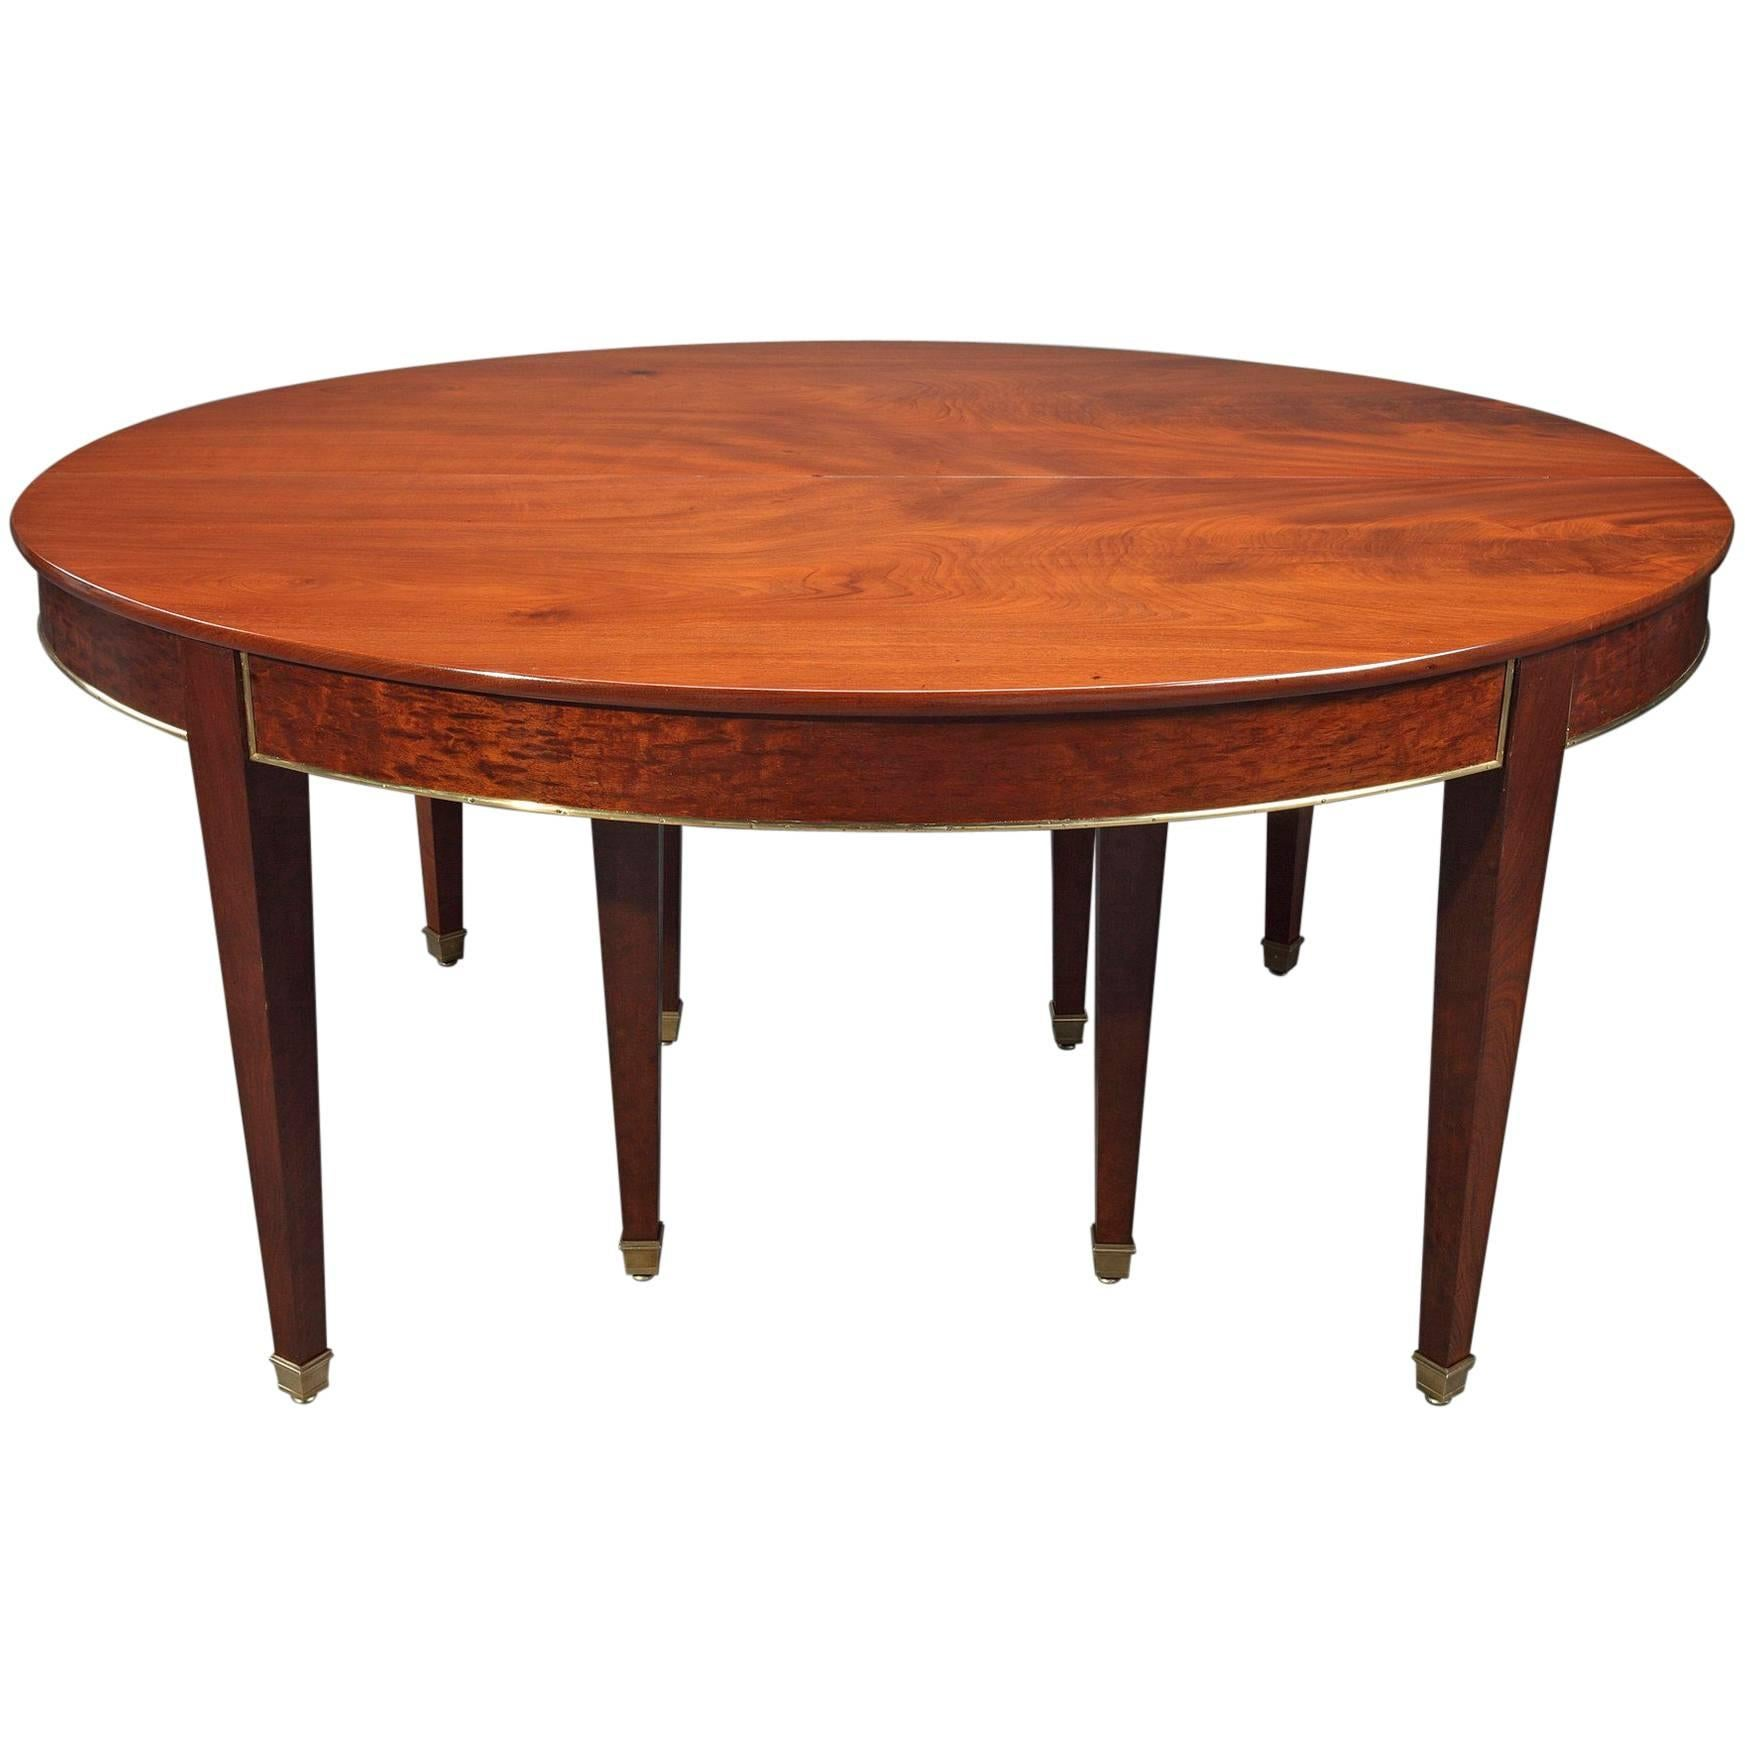 Bespoke Walnut Directoire Style Extending Dining Table At 1stdibs